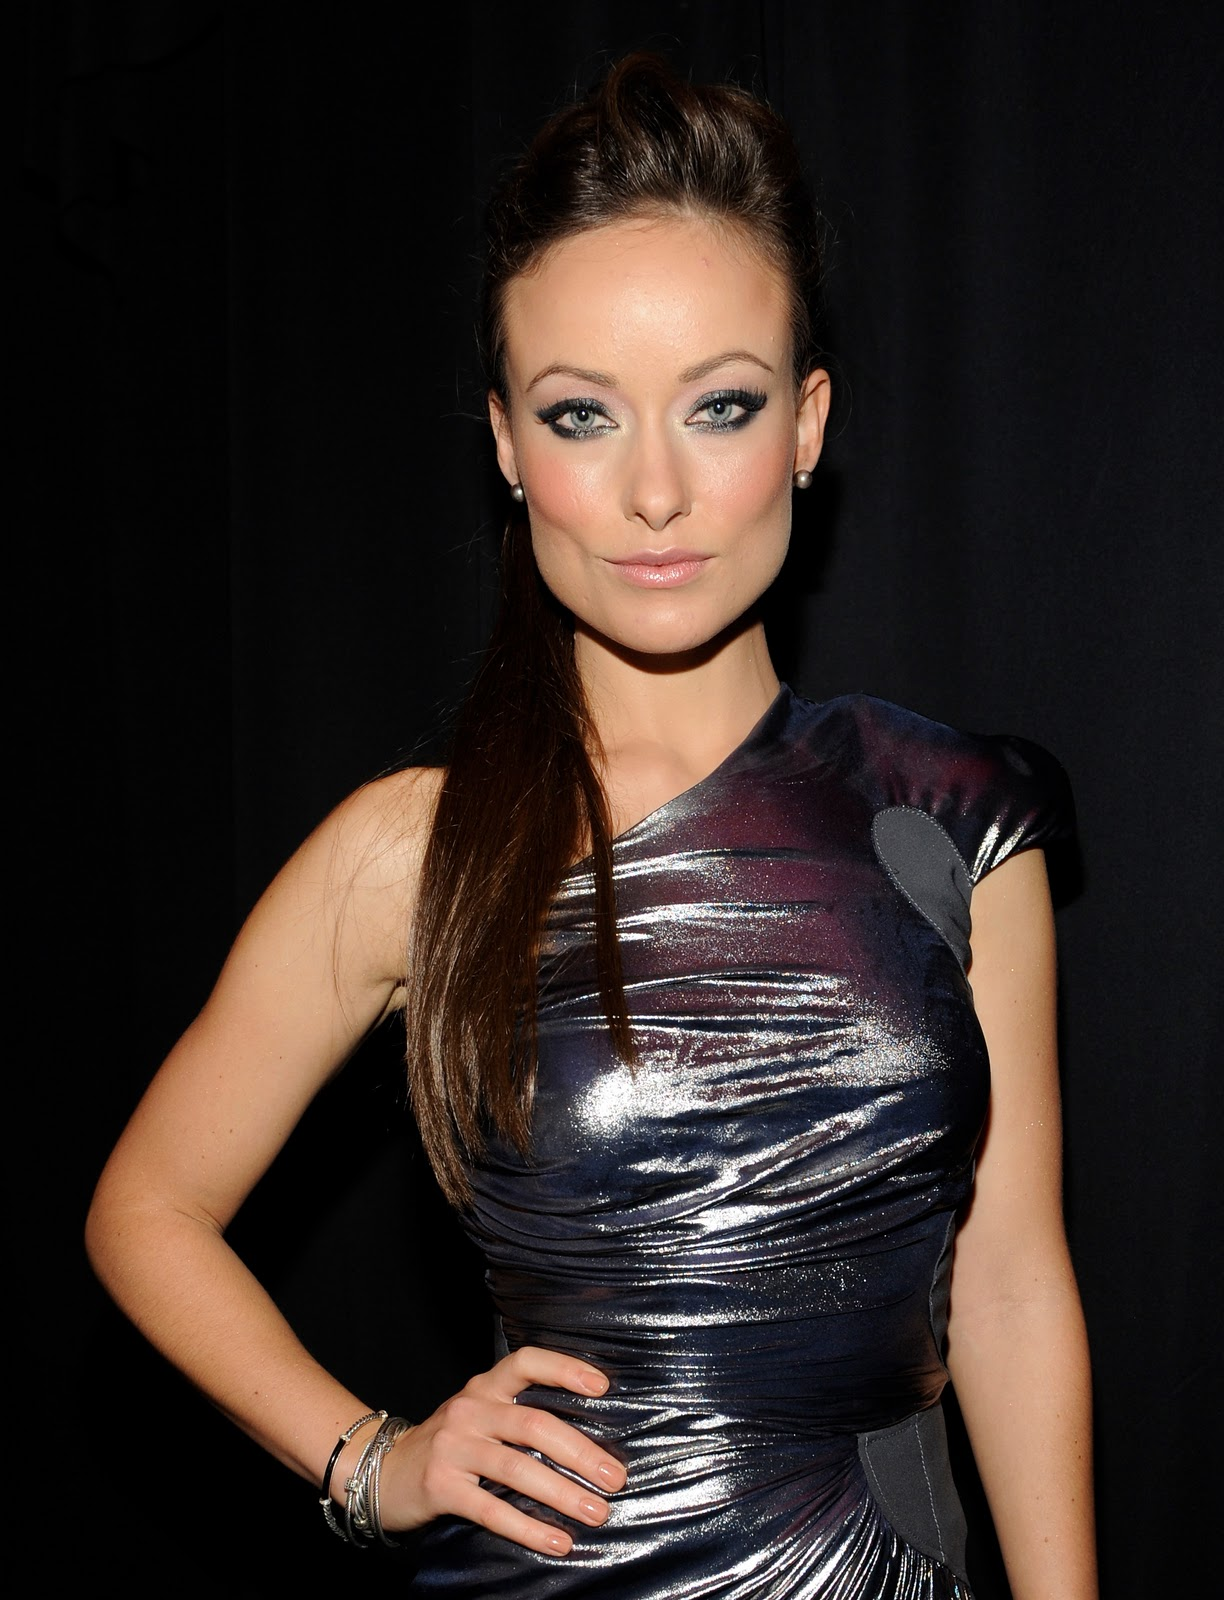 Olivia Wilde Profile And New Pictures 2013: Olivia Wilde Special Pictures (21)